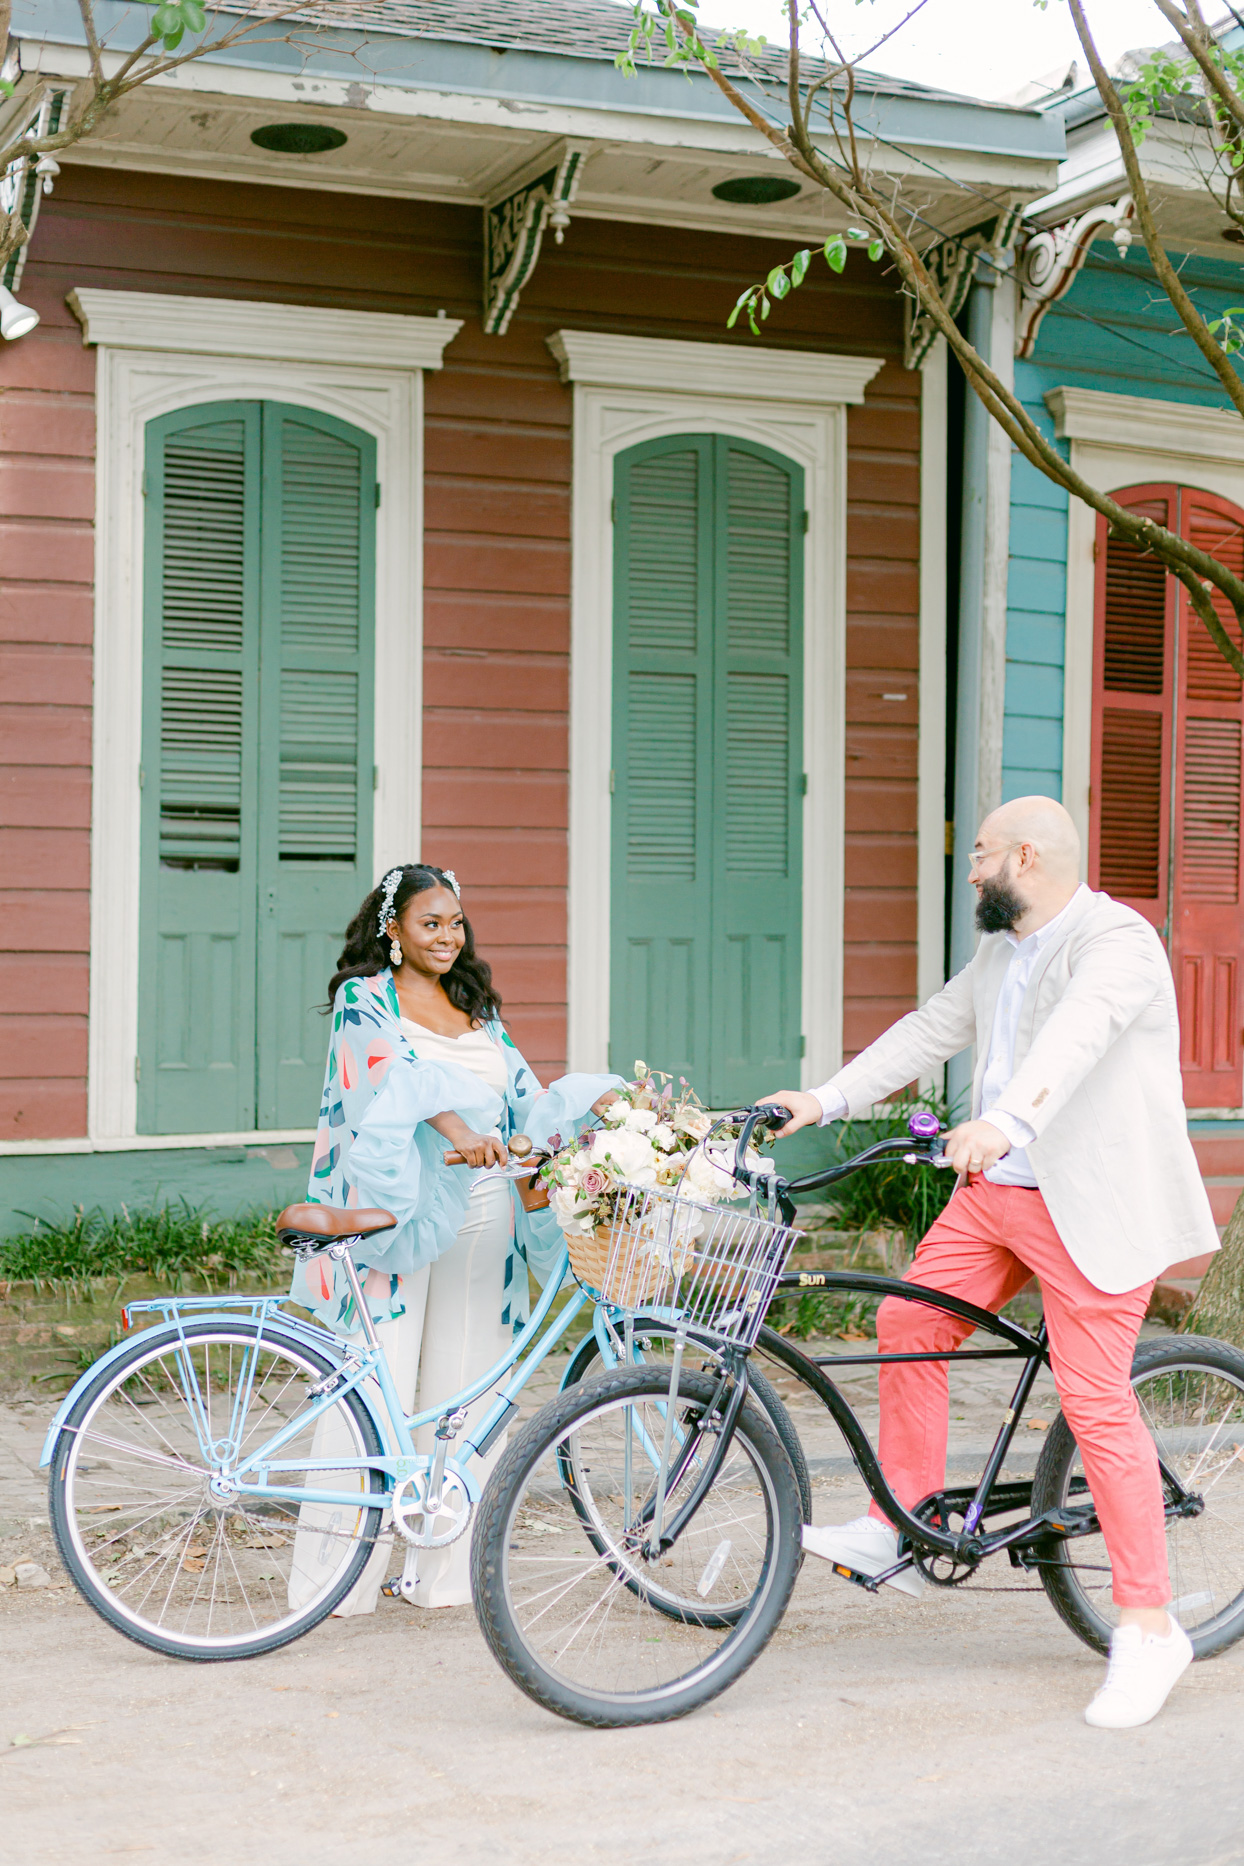 couple wearing pastels with bikes in front of colorful building